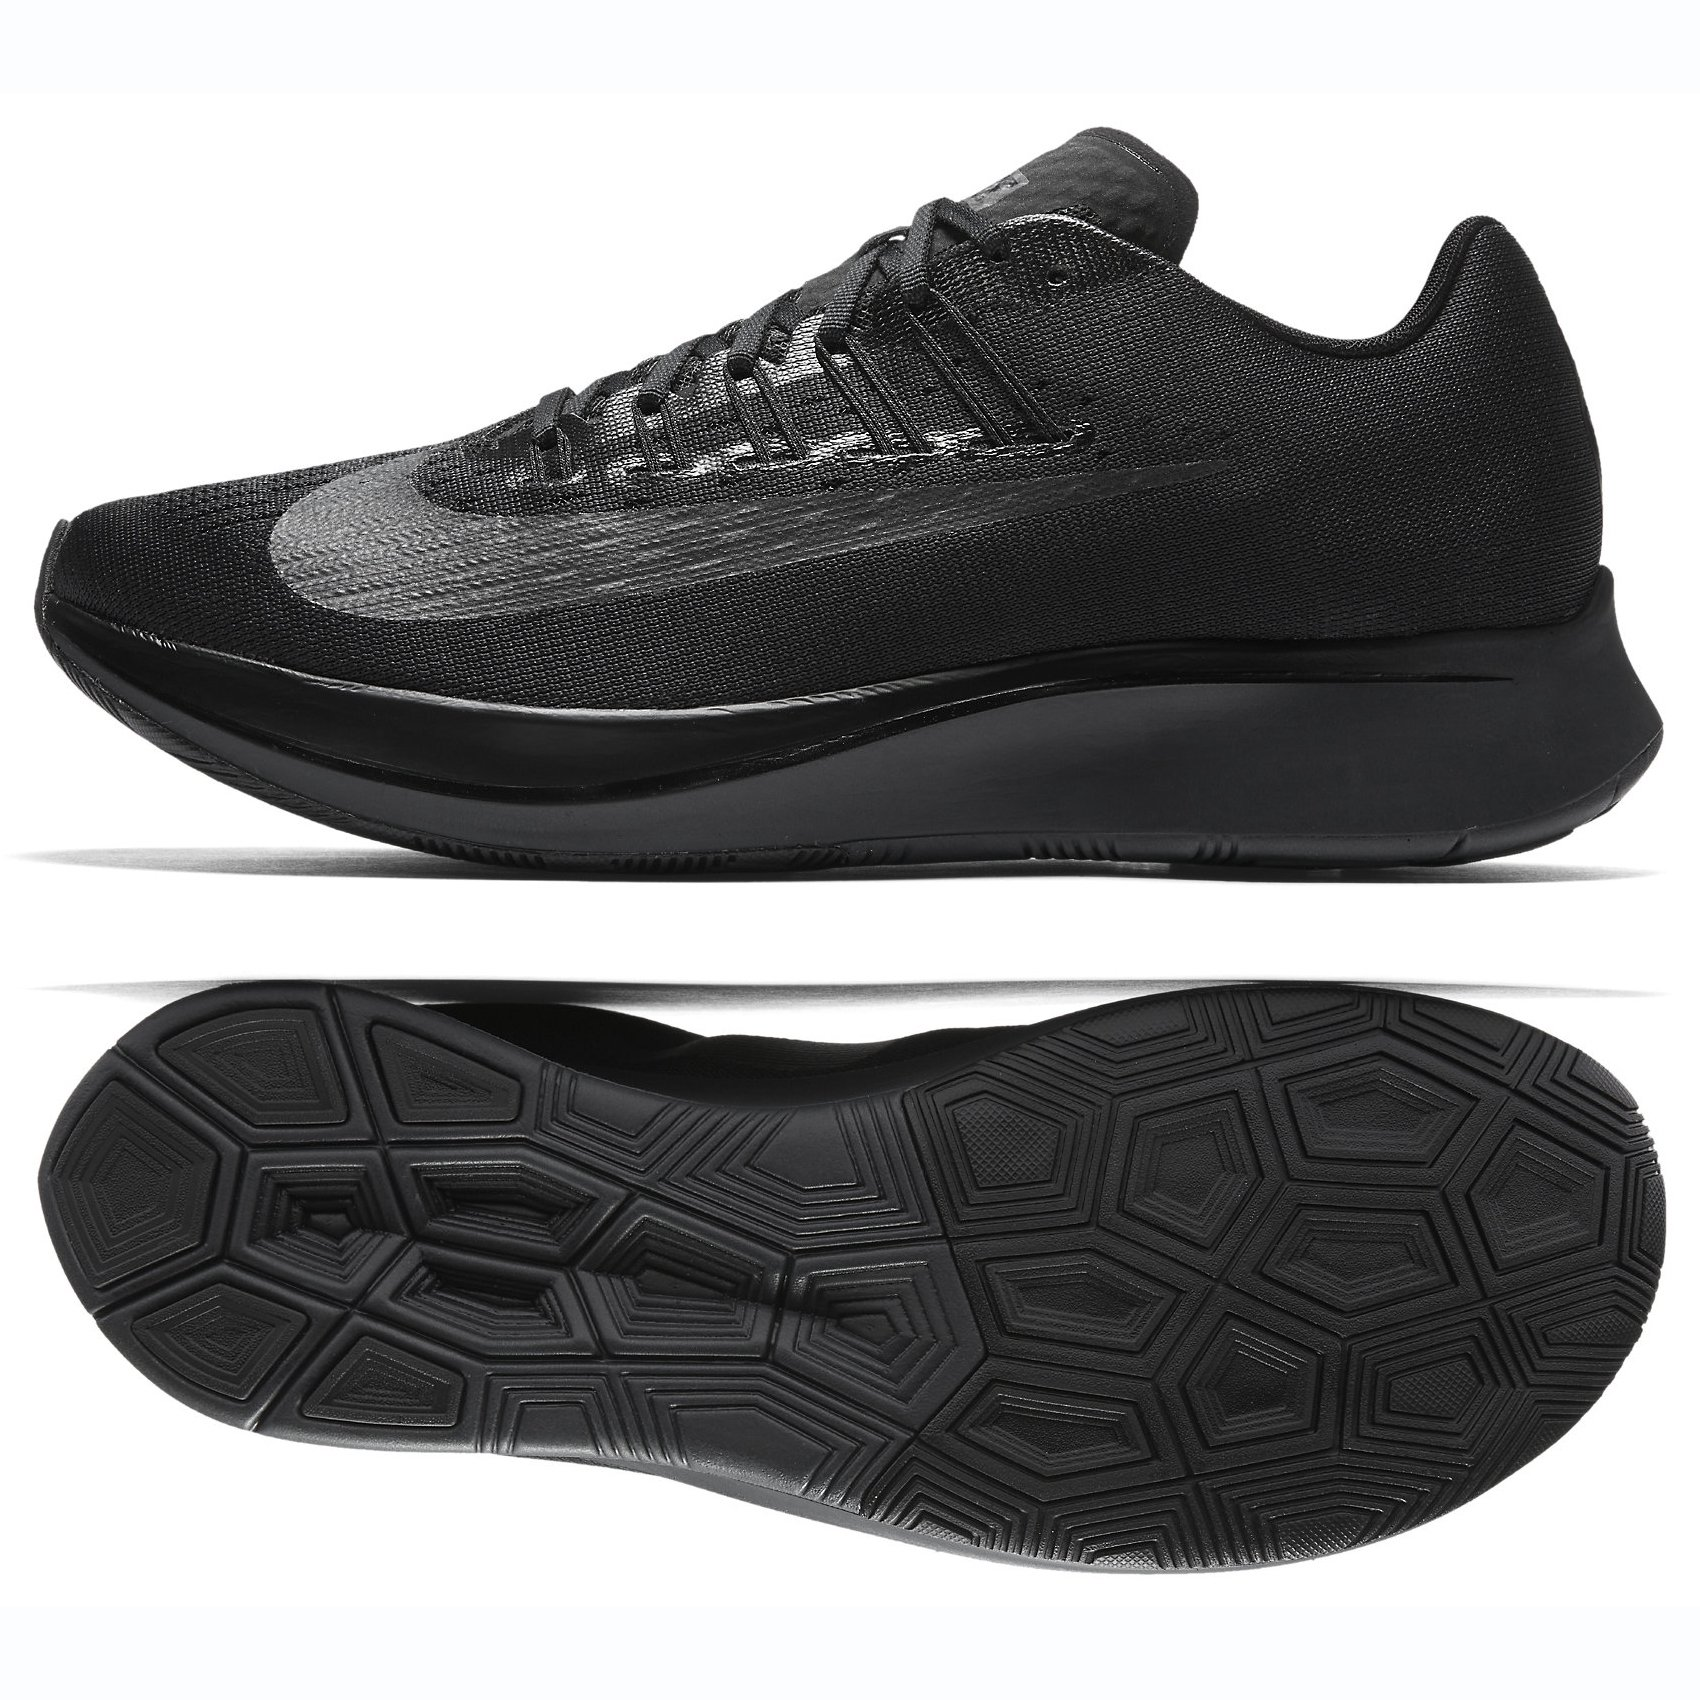 51a5cafa7a5f Galleon - NIKE Zoom Fly 880848 003 Black Anthracite Men s Running Shoes (9)